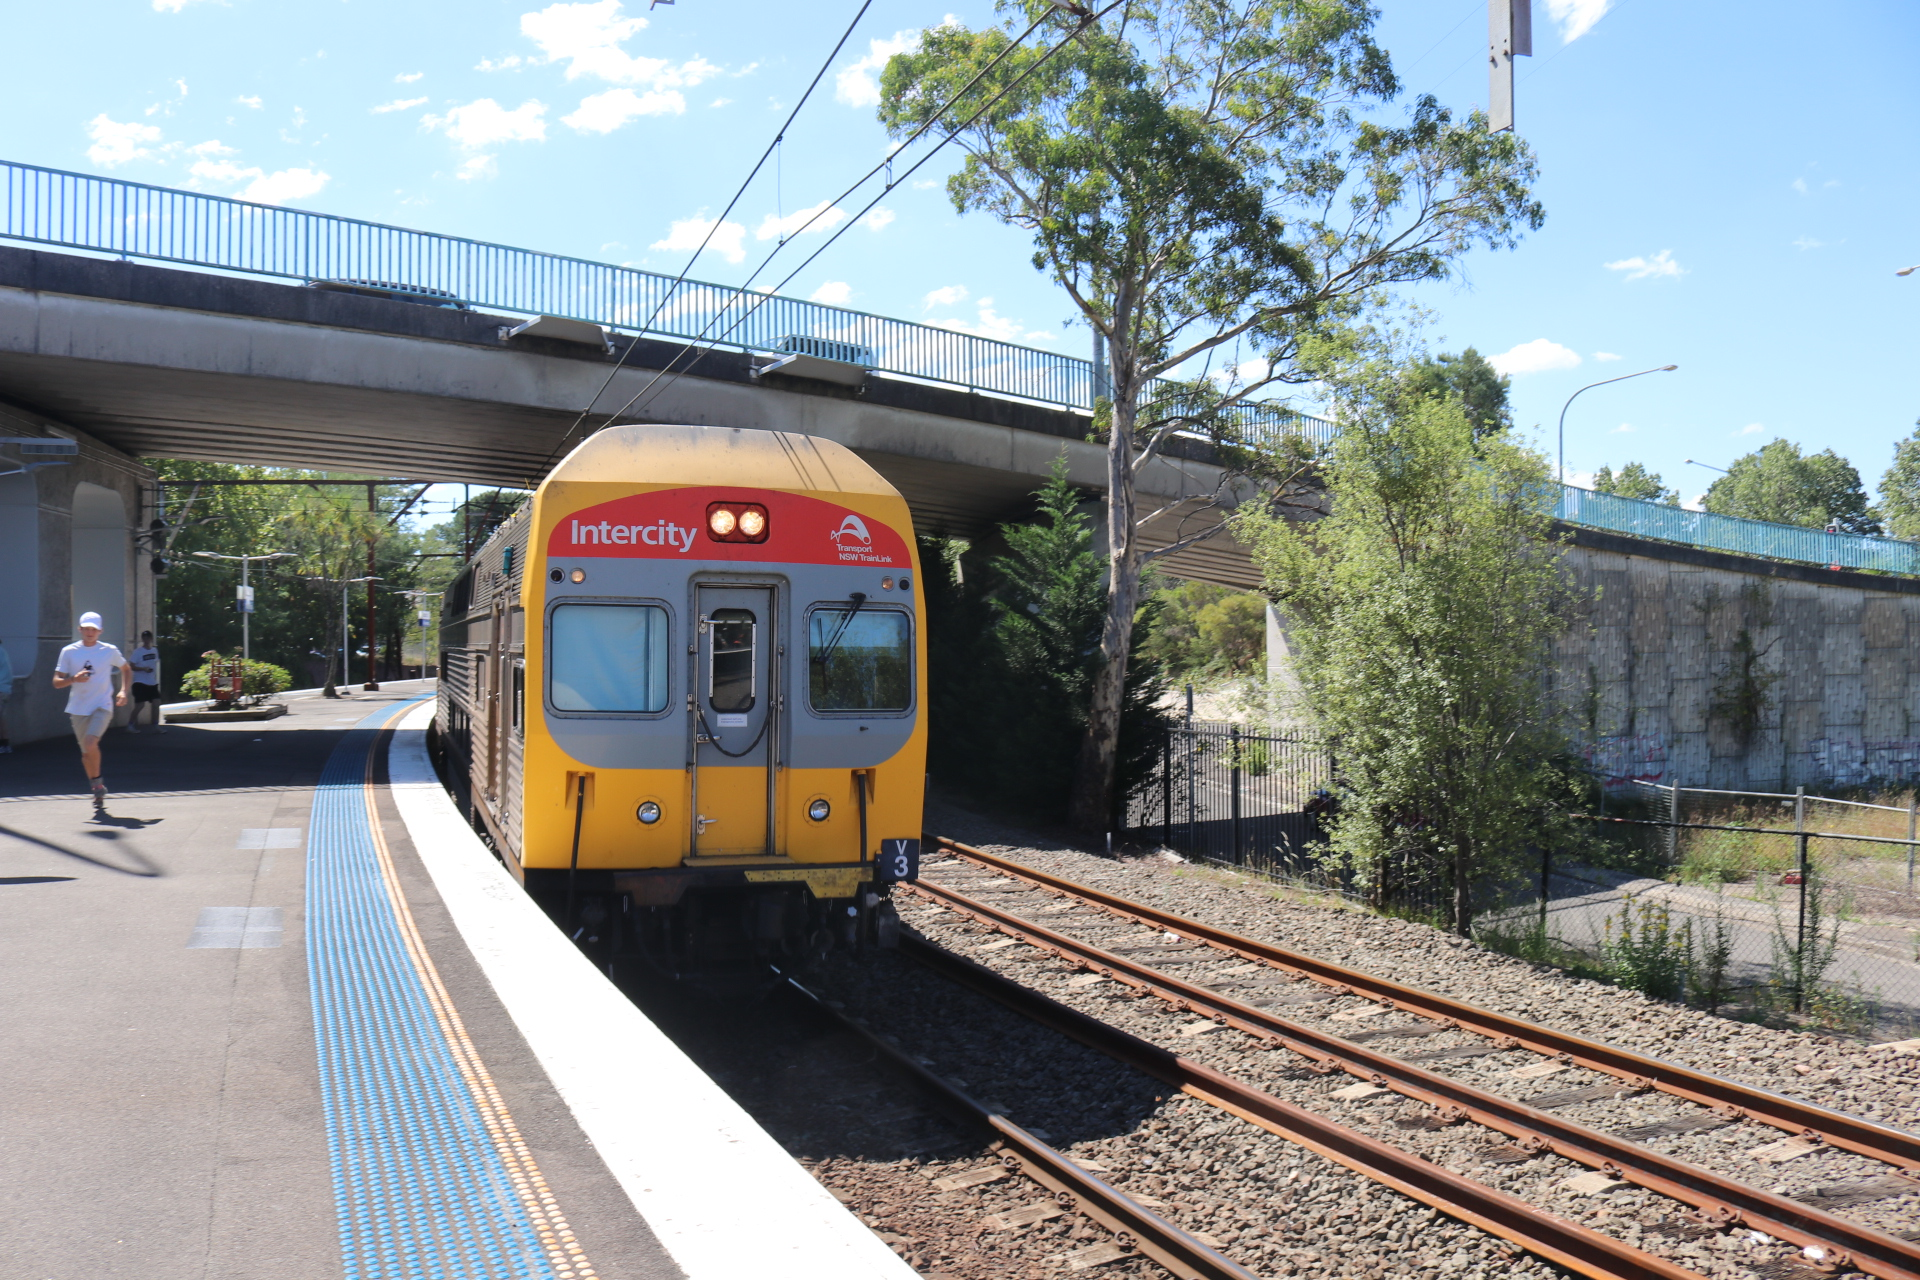 Sydney's Transport History – Double Decker Trains